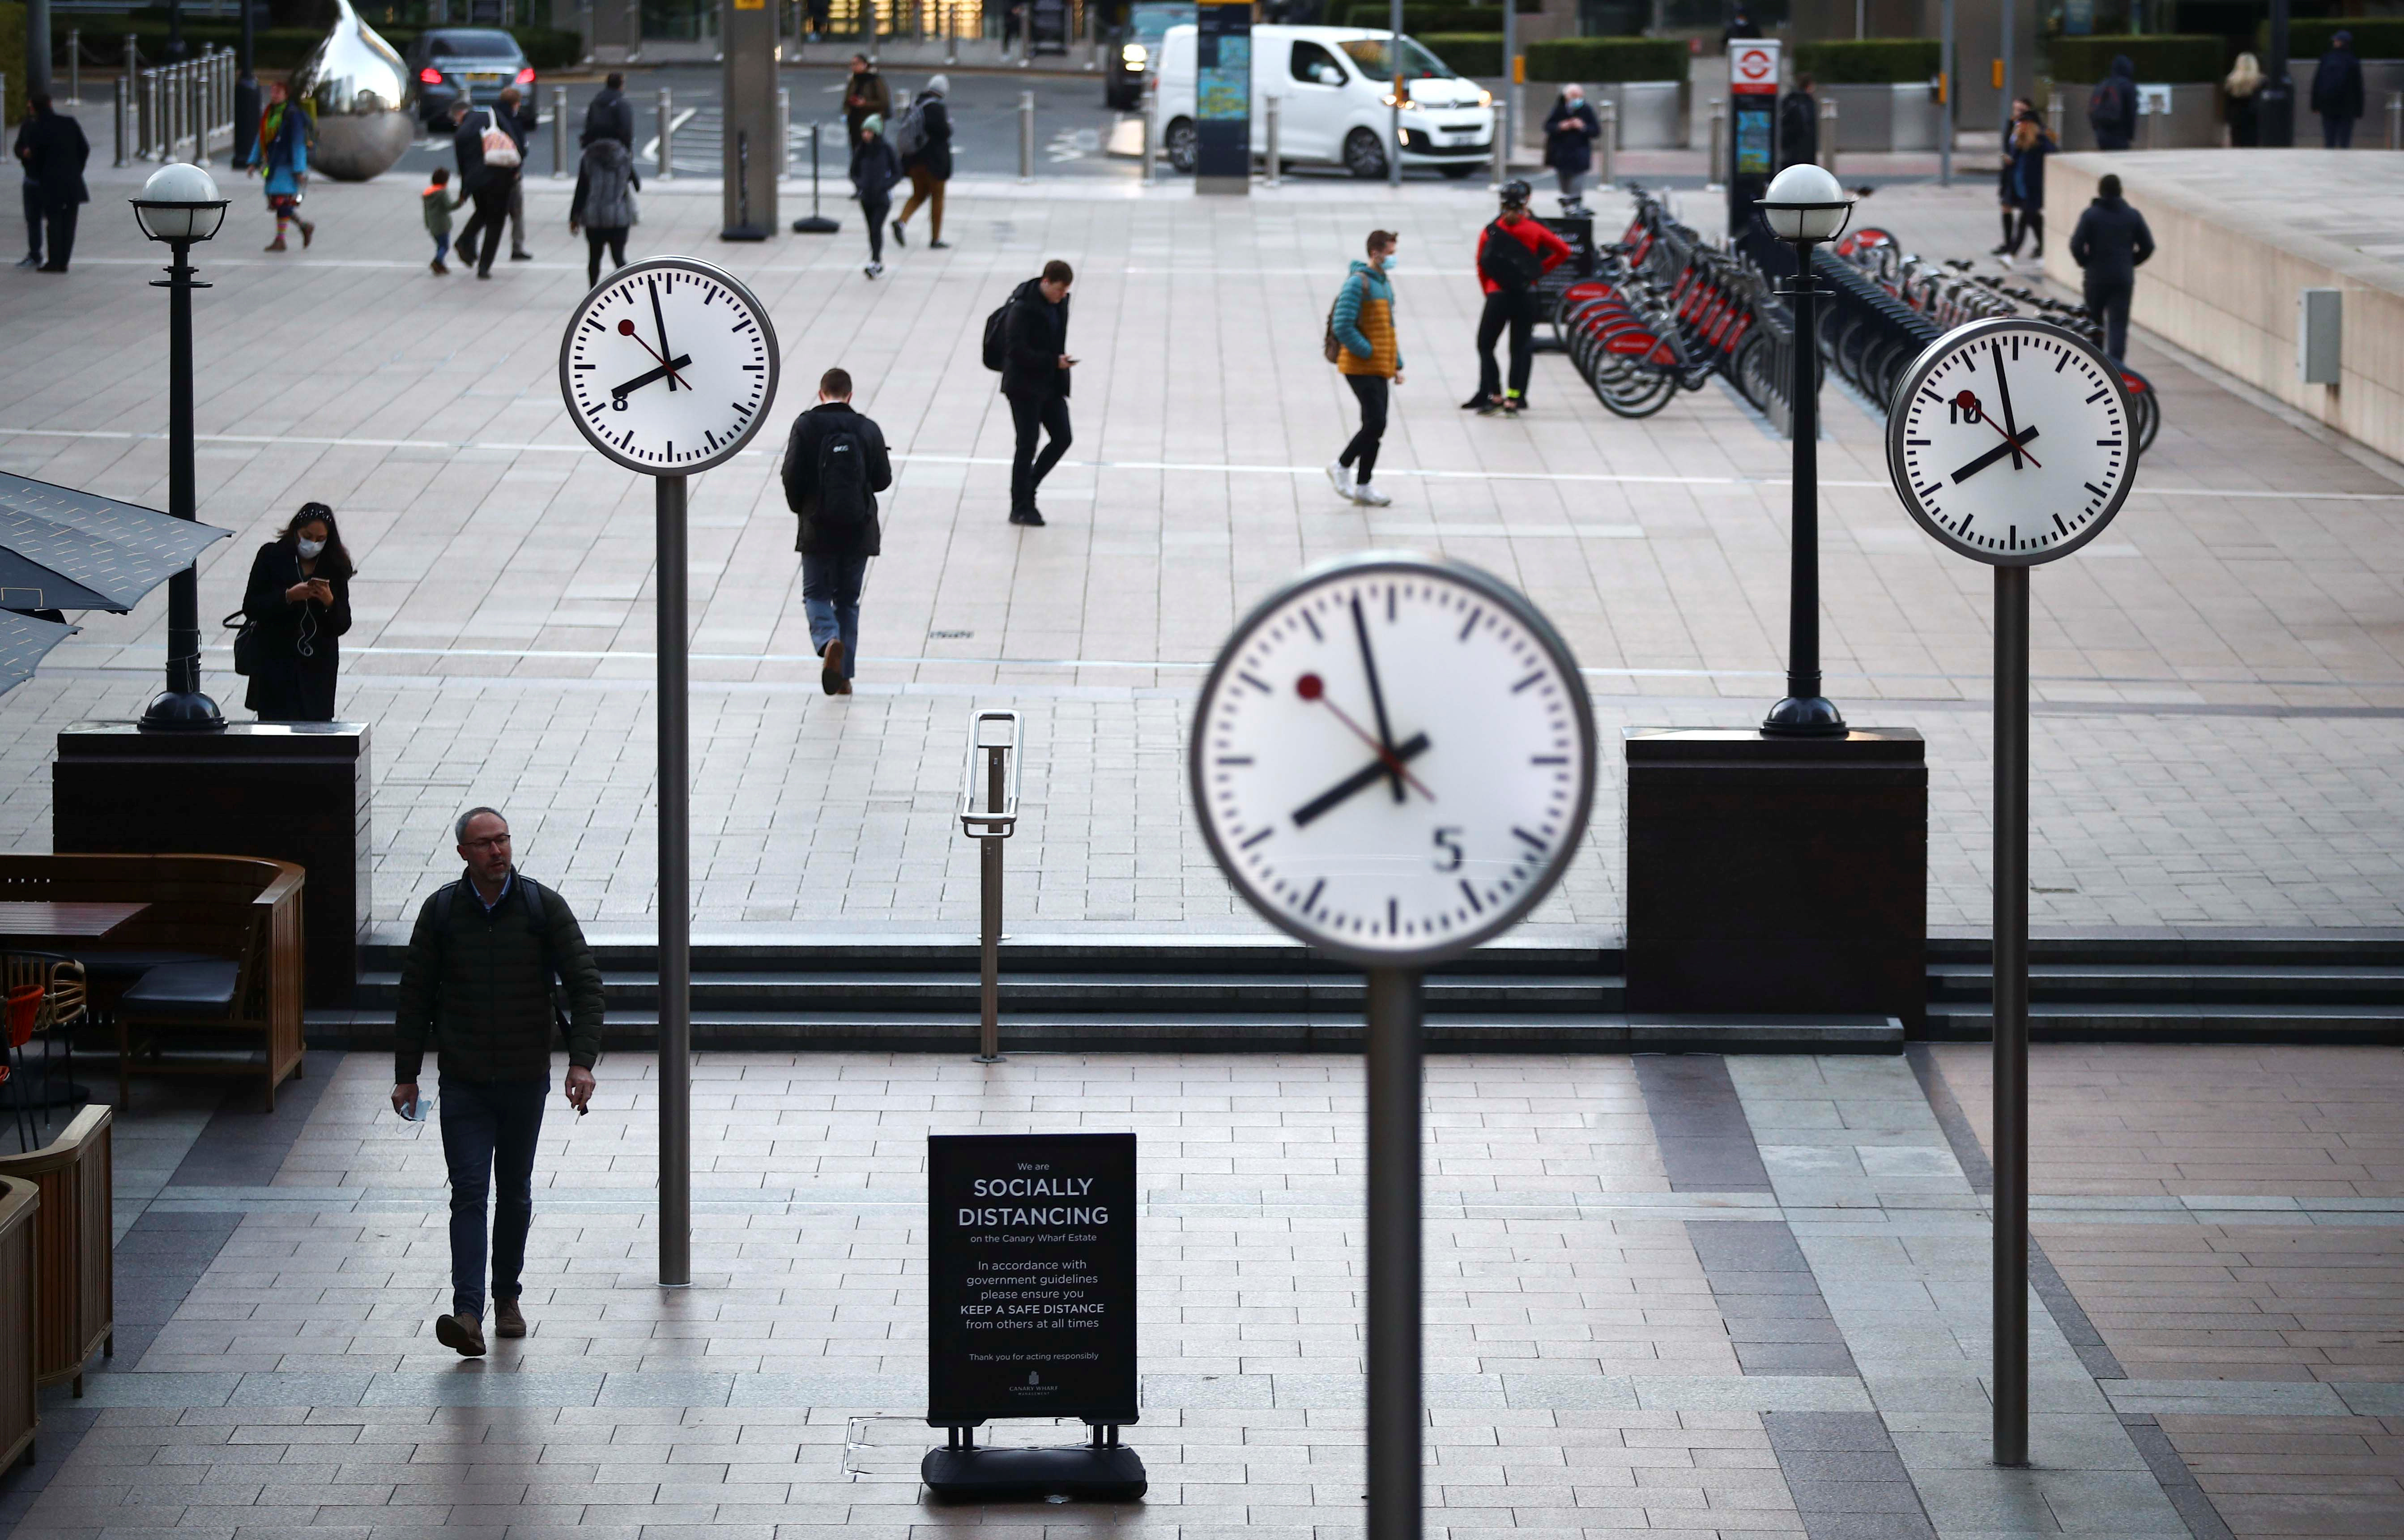 People walk during the morning rush hour in the Canary Wharf amid the outbreak of the coronavirus disease (COVID-19) in London Britain, October 15, 2020. REUTERS/Hannah McKay - RC2VIJ9GREF3